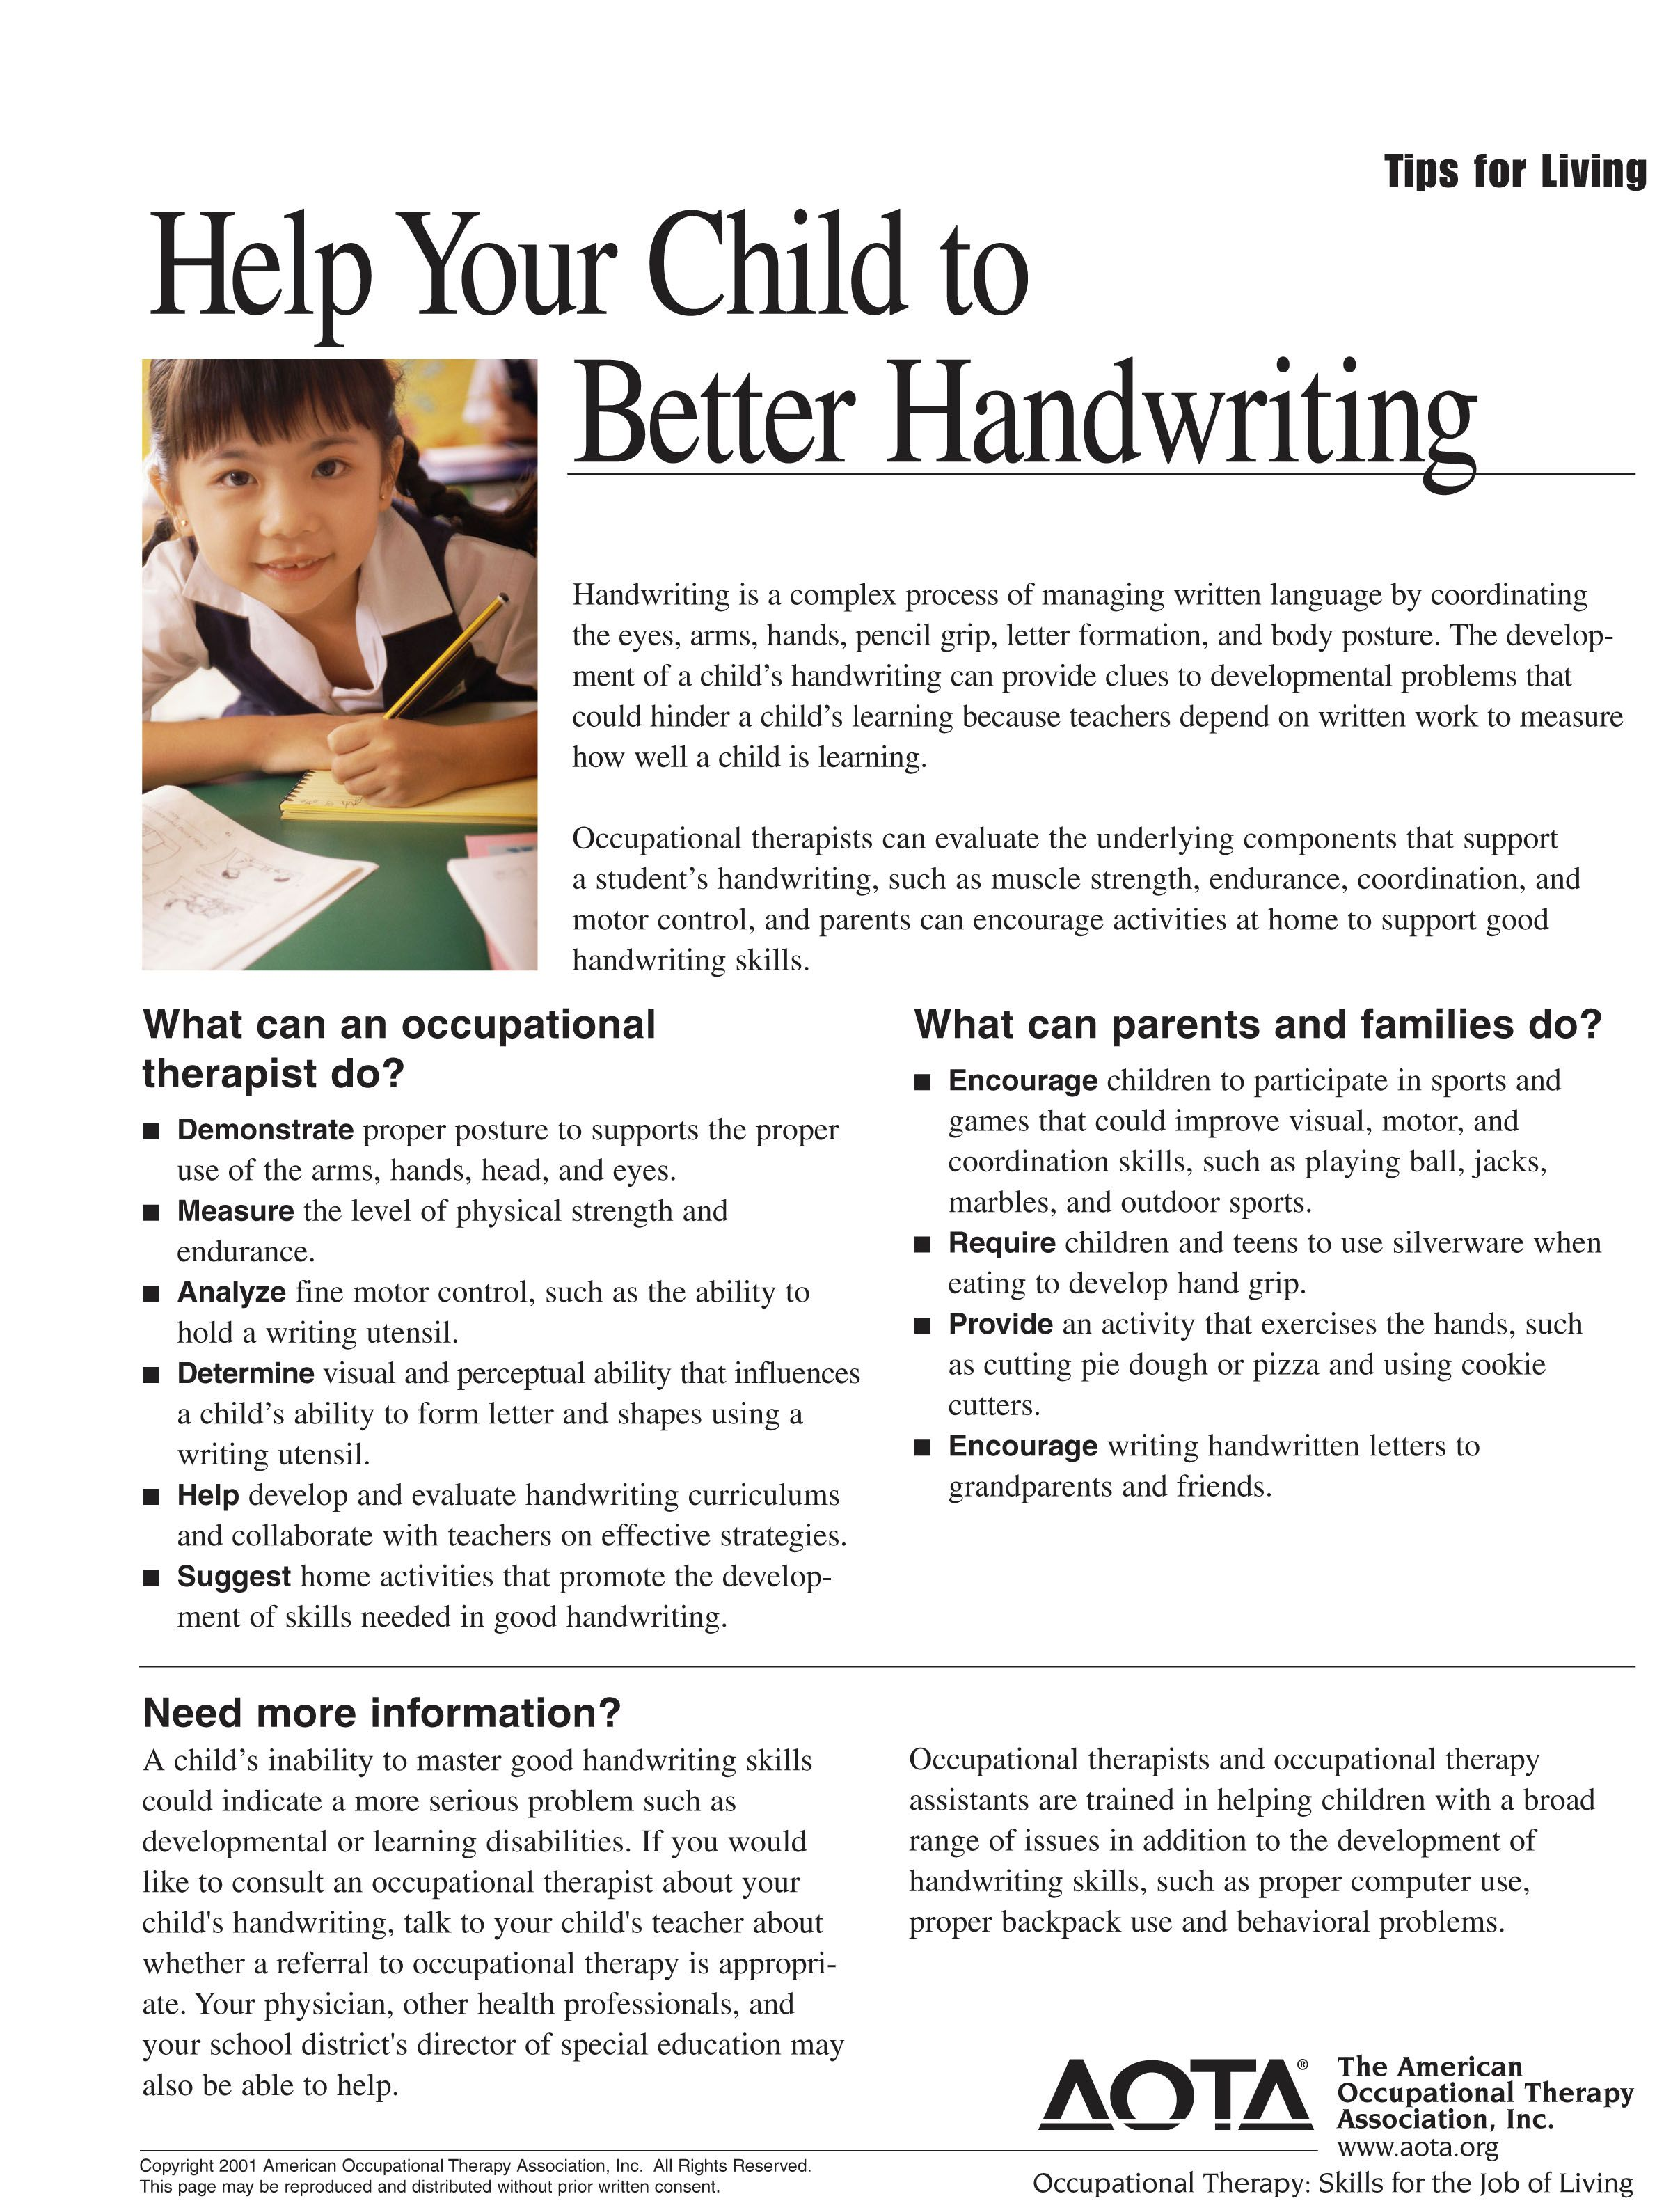 worksheet Better Handwriting Worksheets this handwriting worksheet shows what occupational therapists and parentsfamilies can do to help children